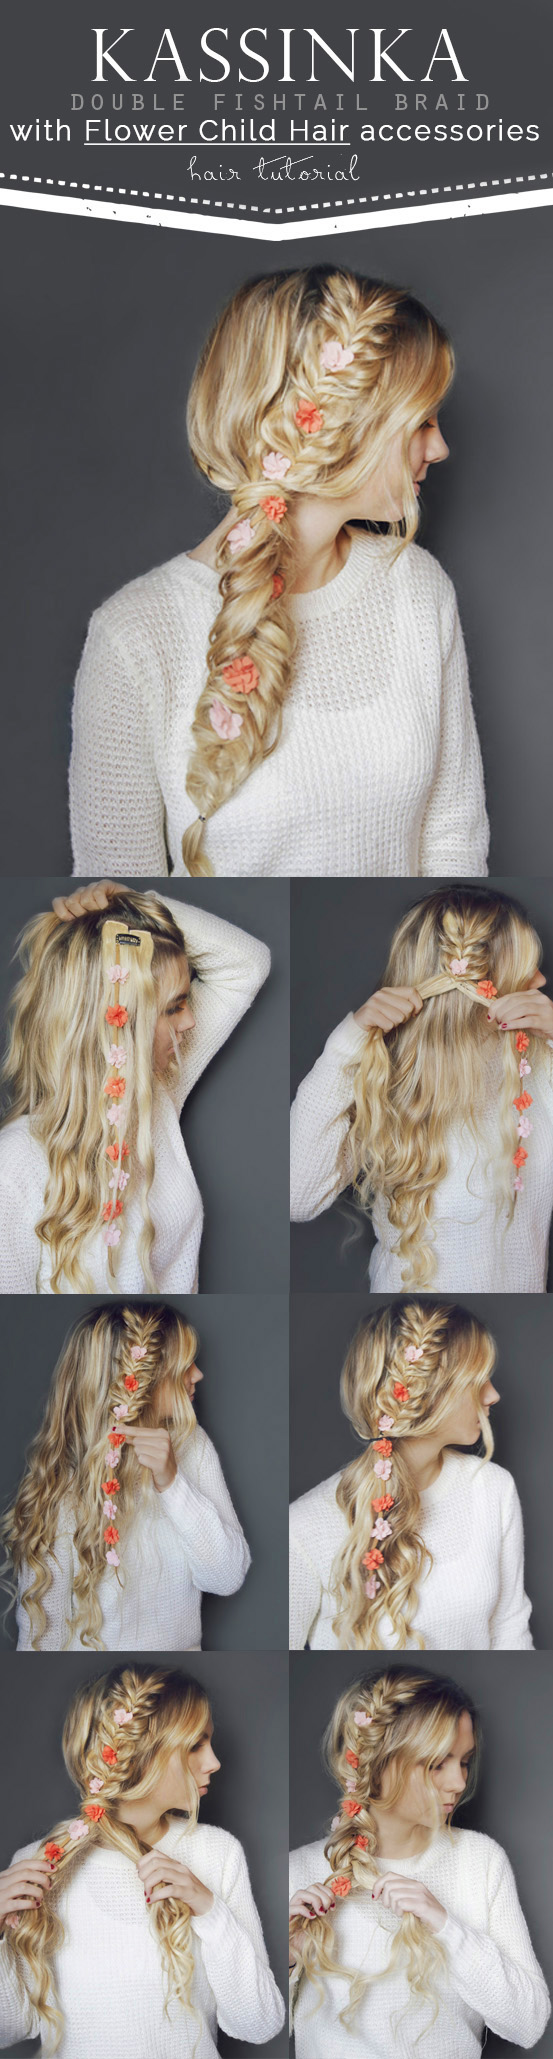 kassinka-flower-child-hair-clip-tutorial